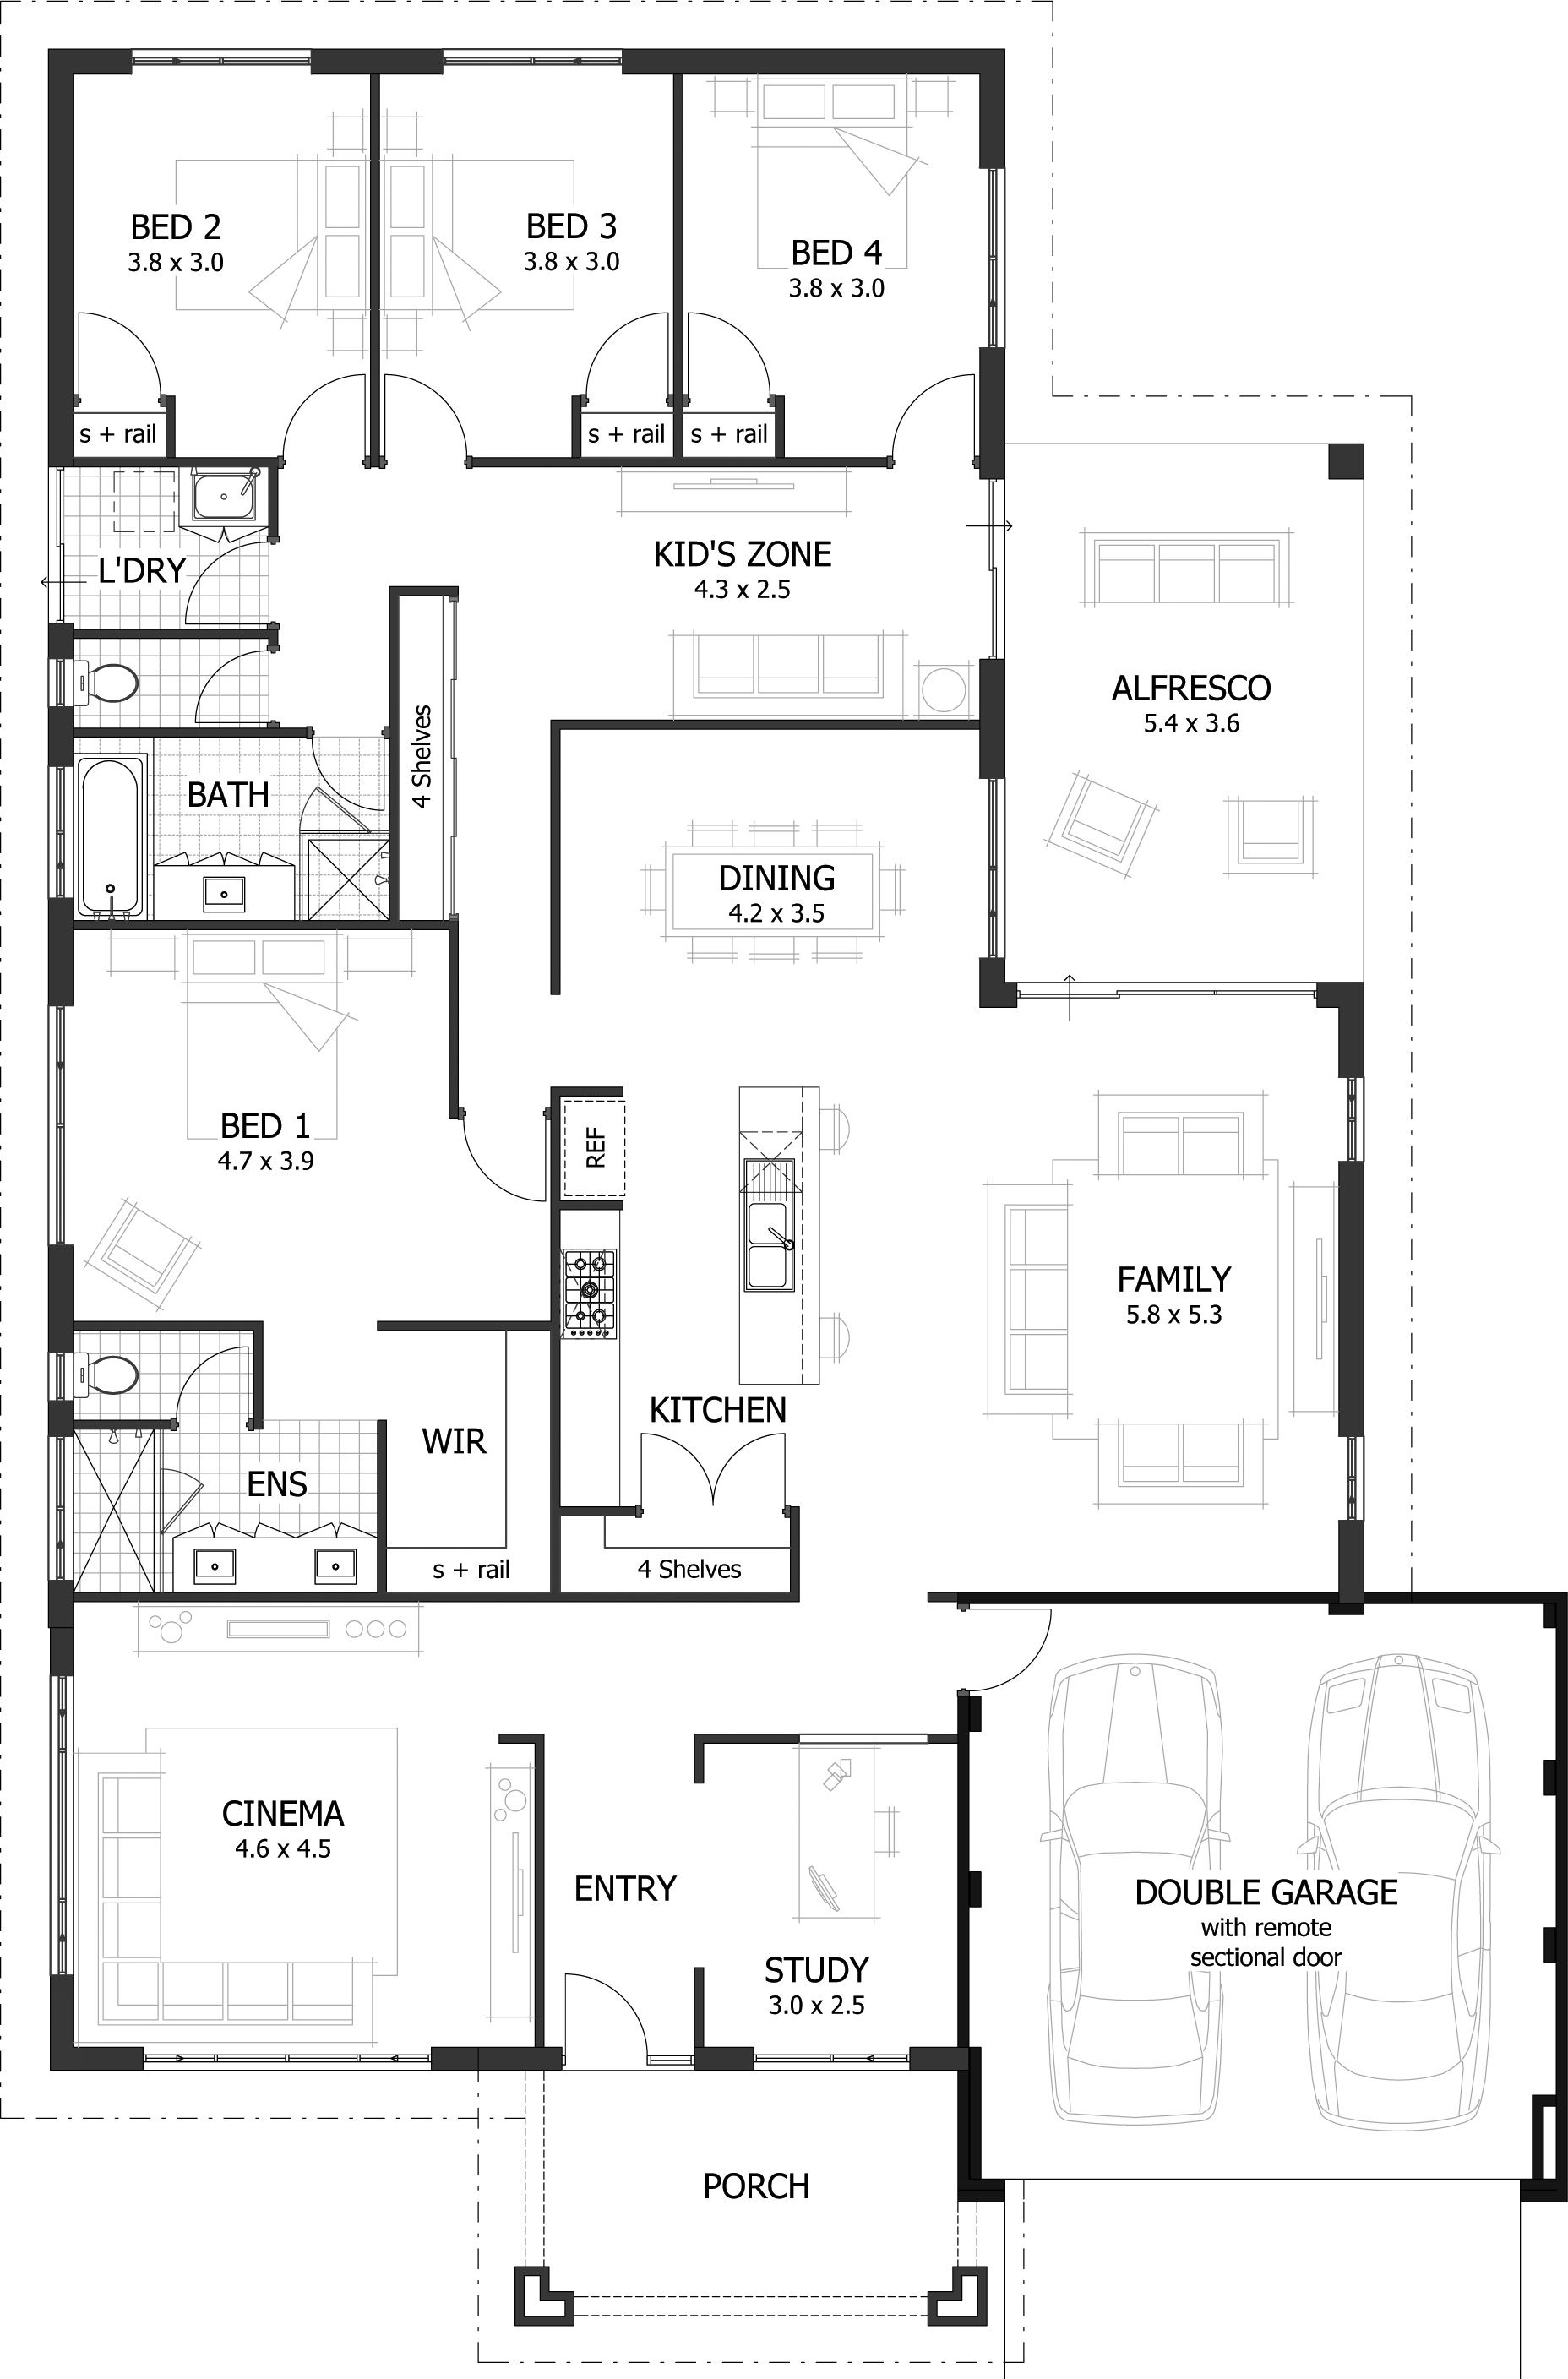 Awesome 4 Bedroom House Plans U0026 Home Designs | Celebration Homes